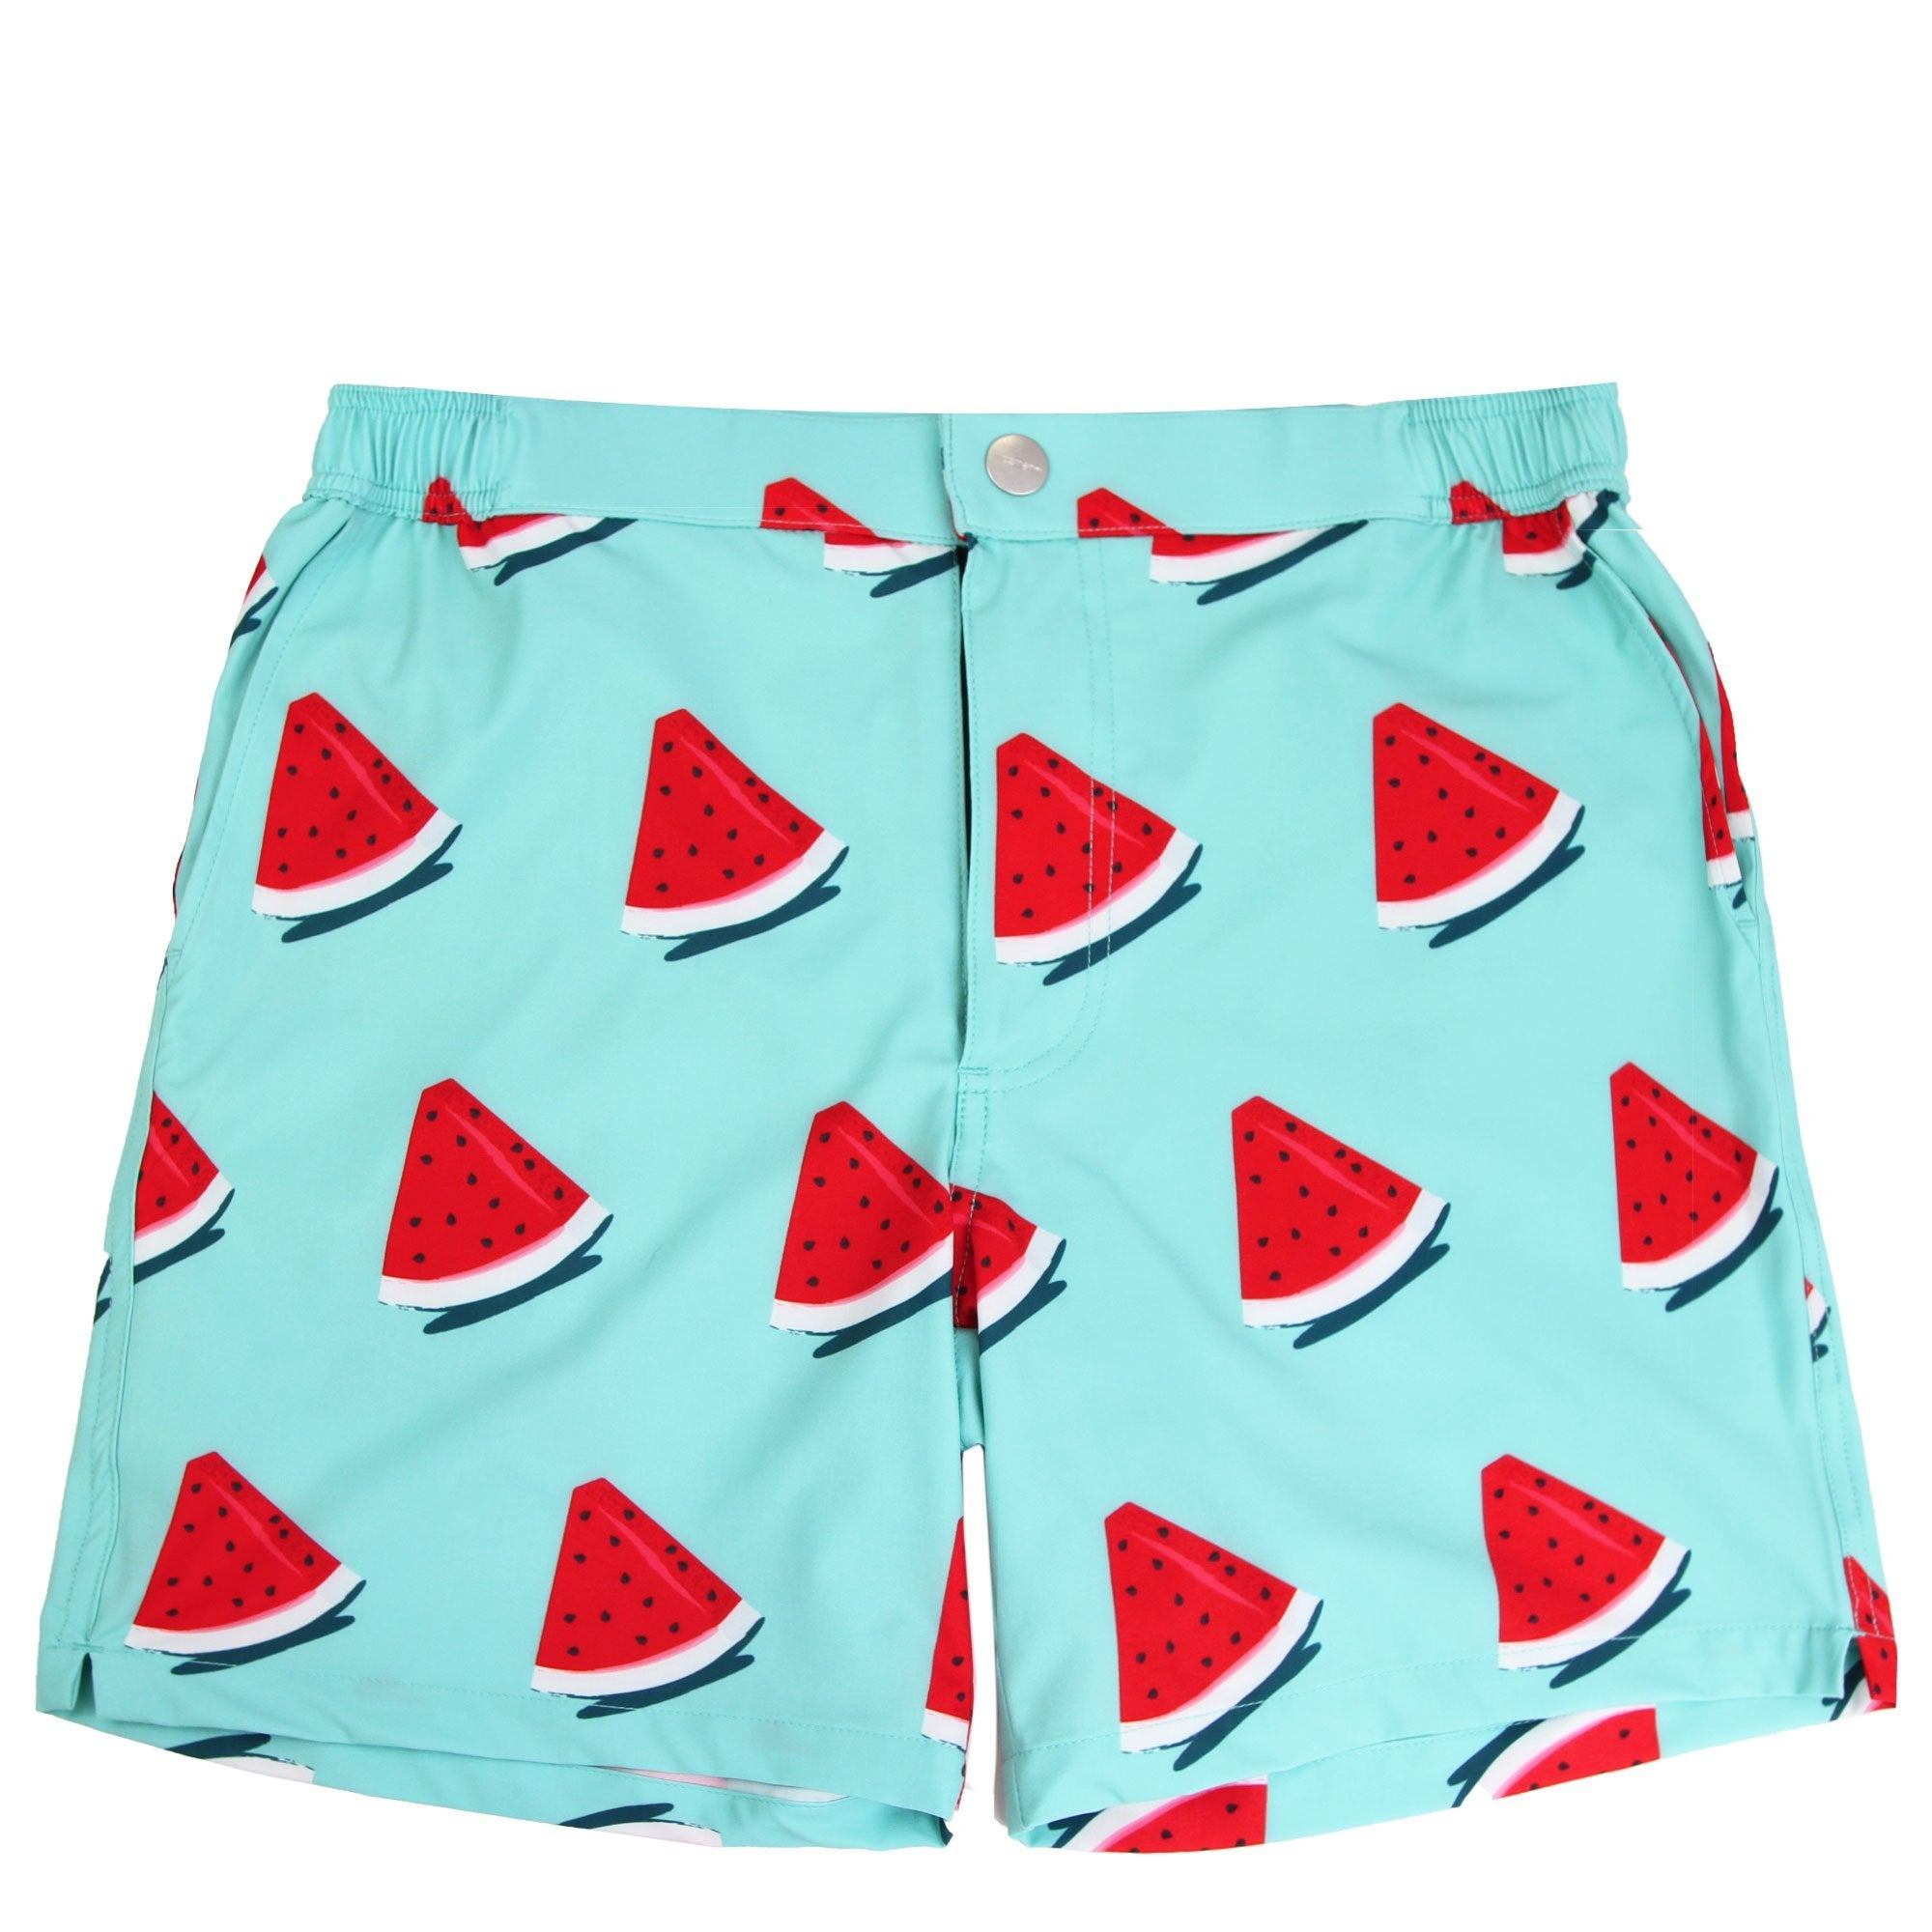 Watermelon-Swim-Shorts.jpg